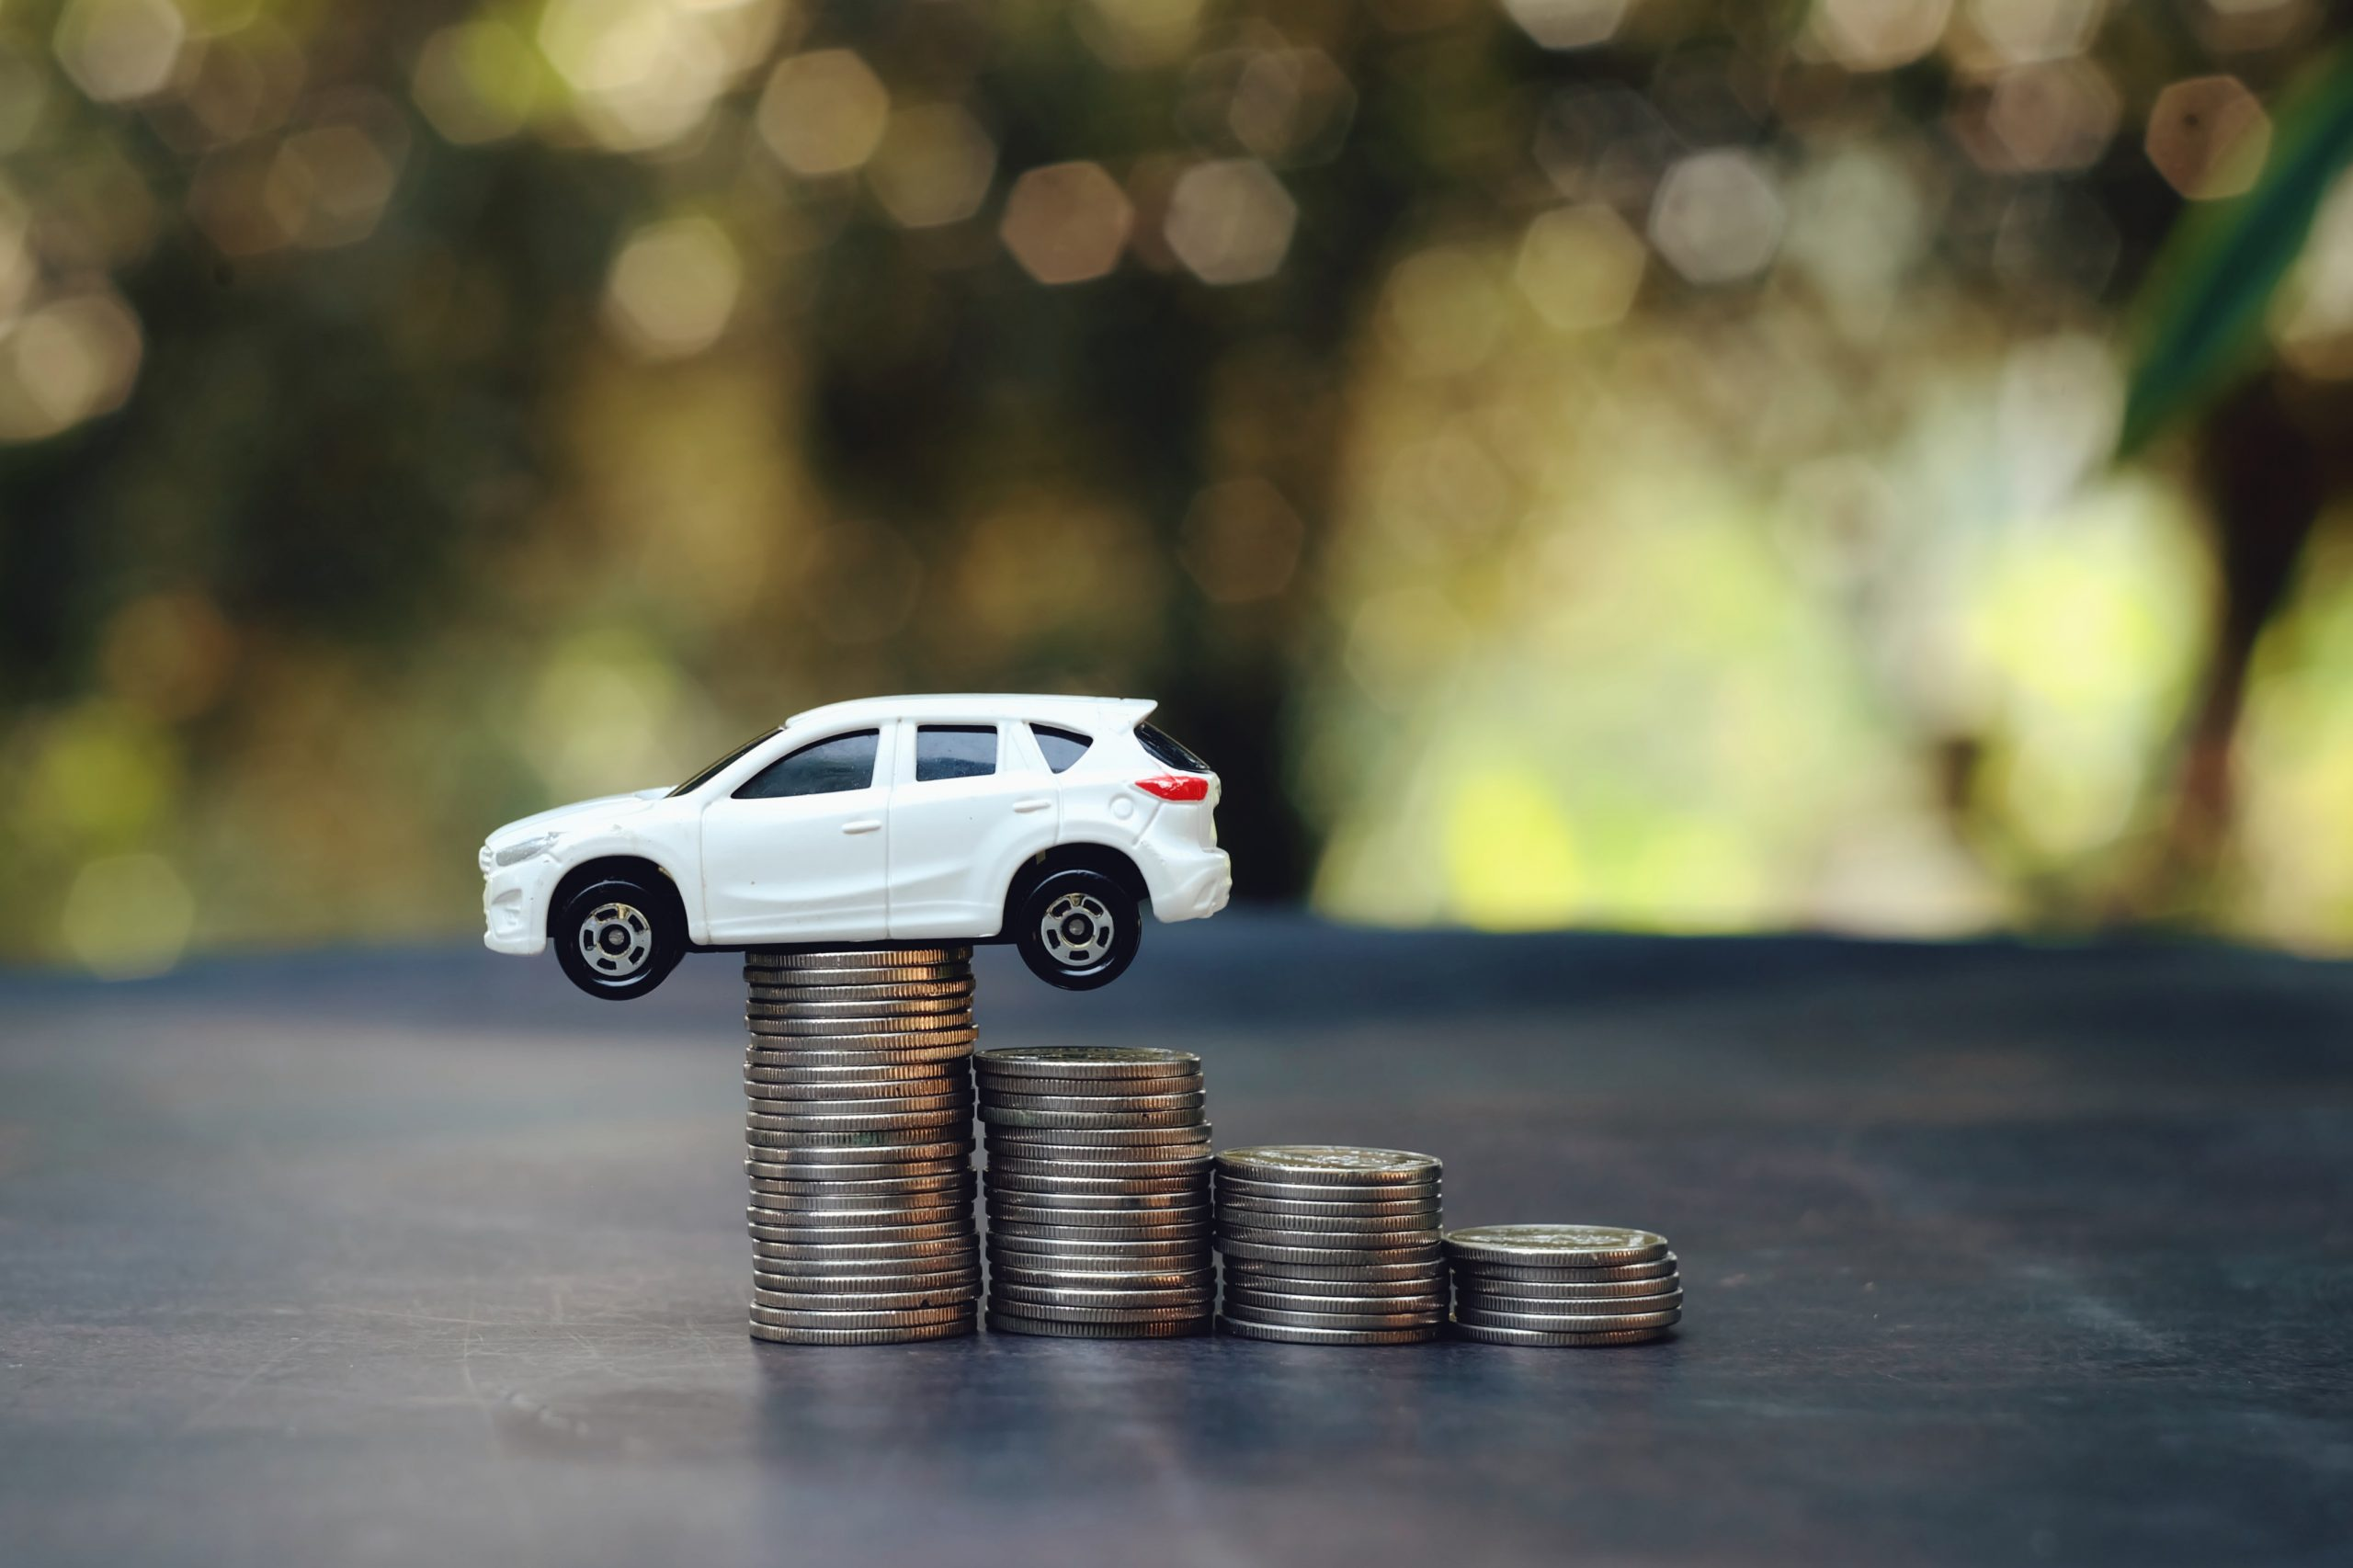 Is a car an asset? Here's what you need to know